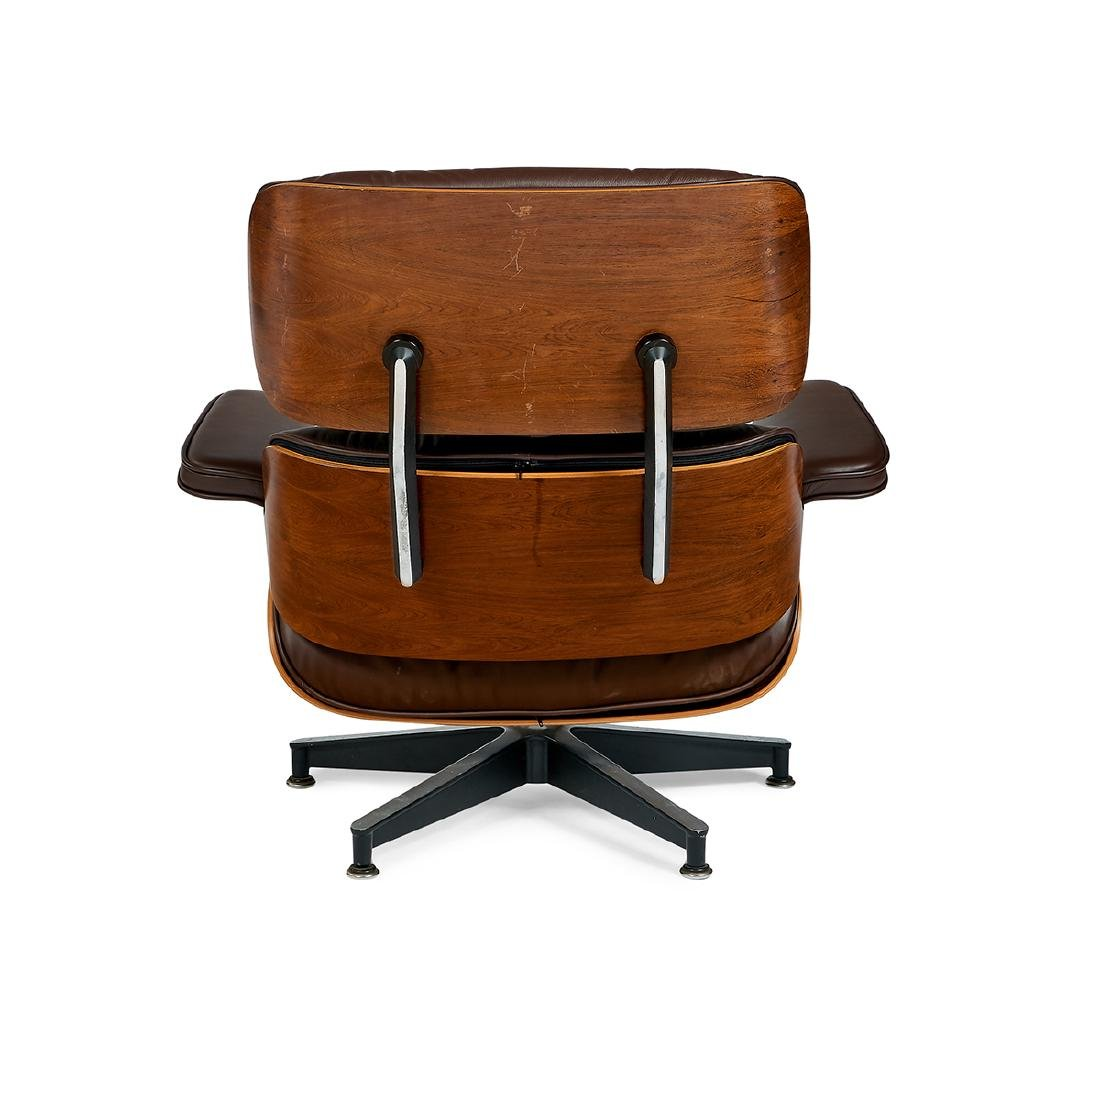 Charles & Ray Eames Herman Miller 670 chair - 2